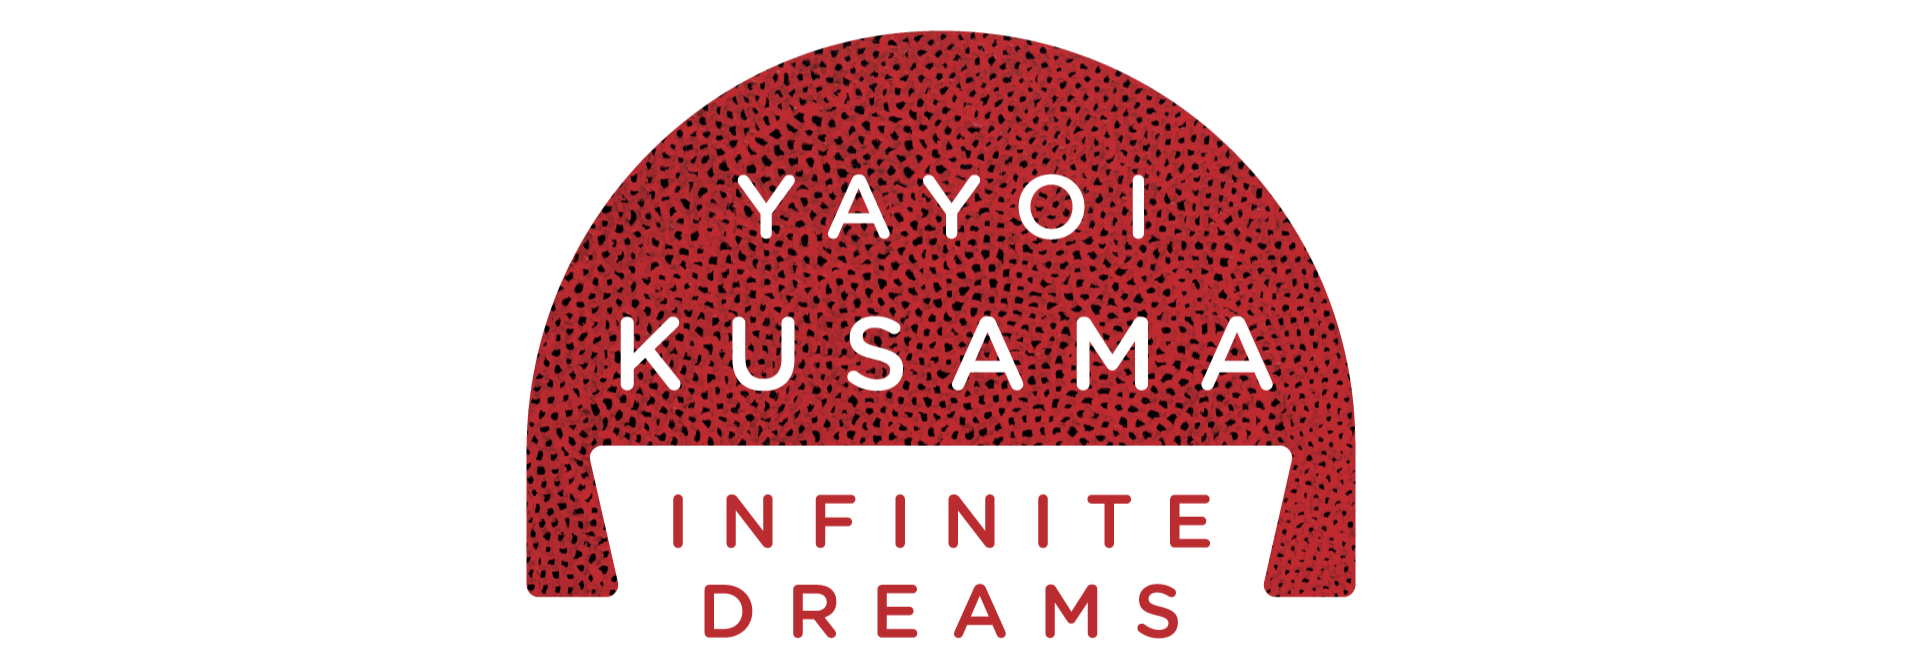 kusama-09_edited.png